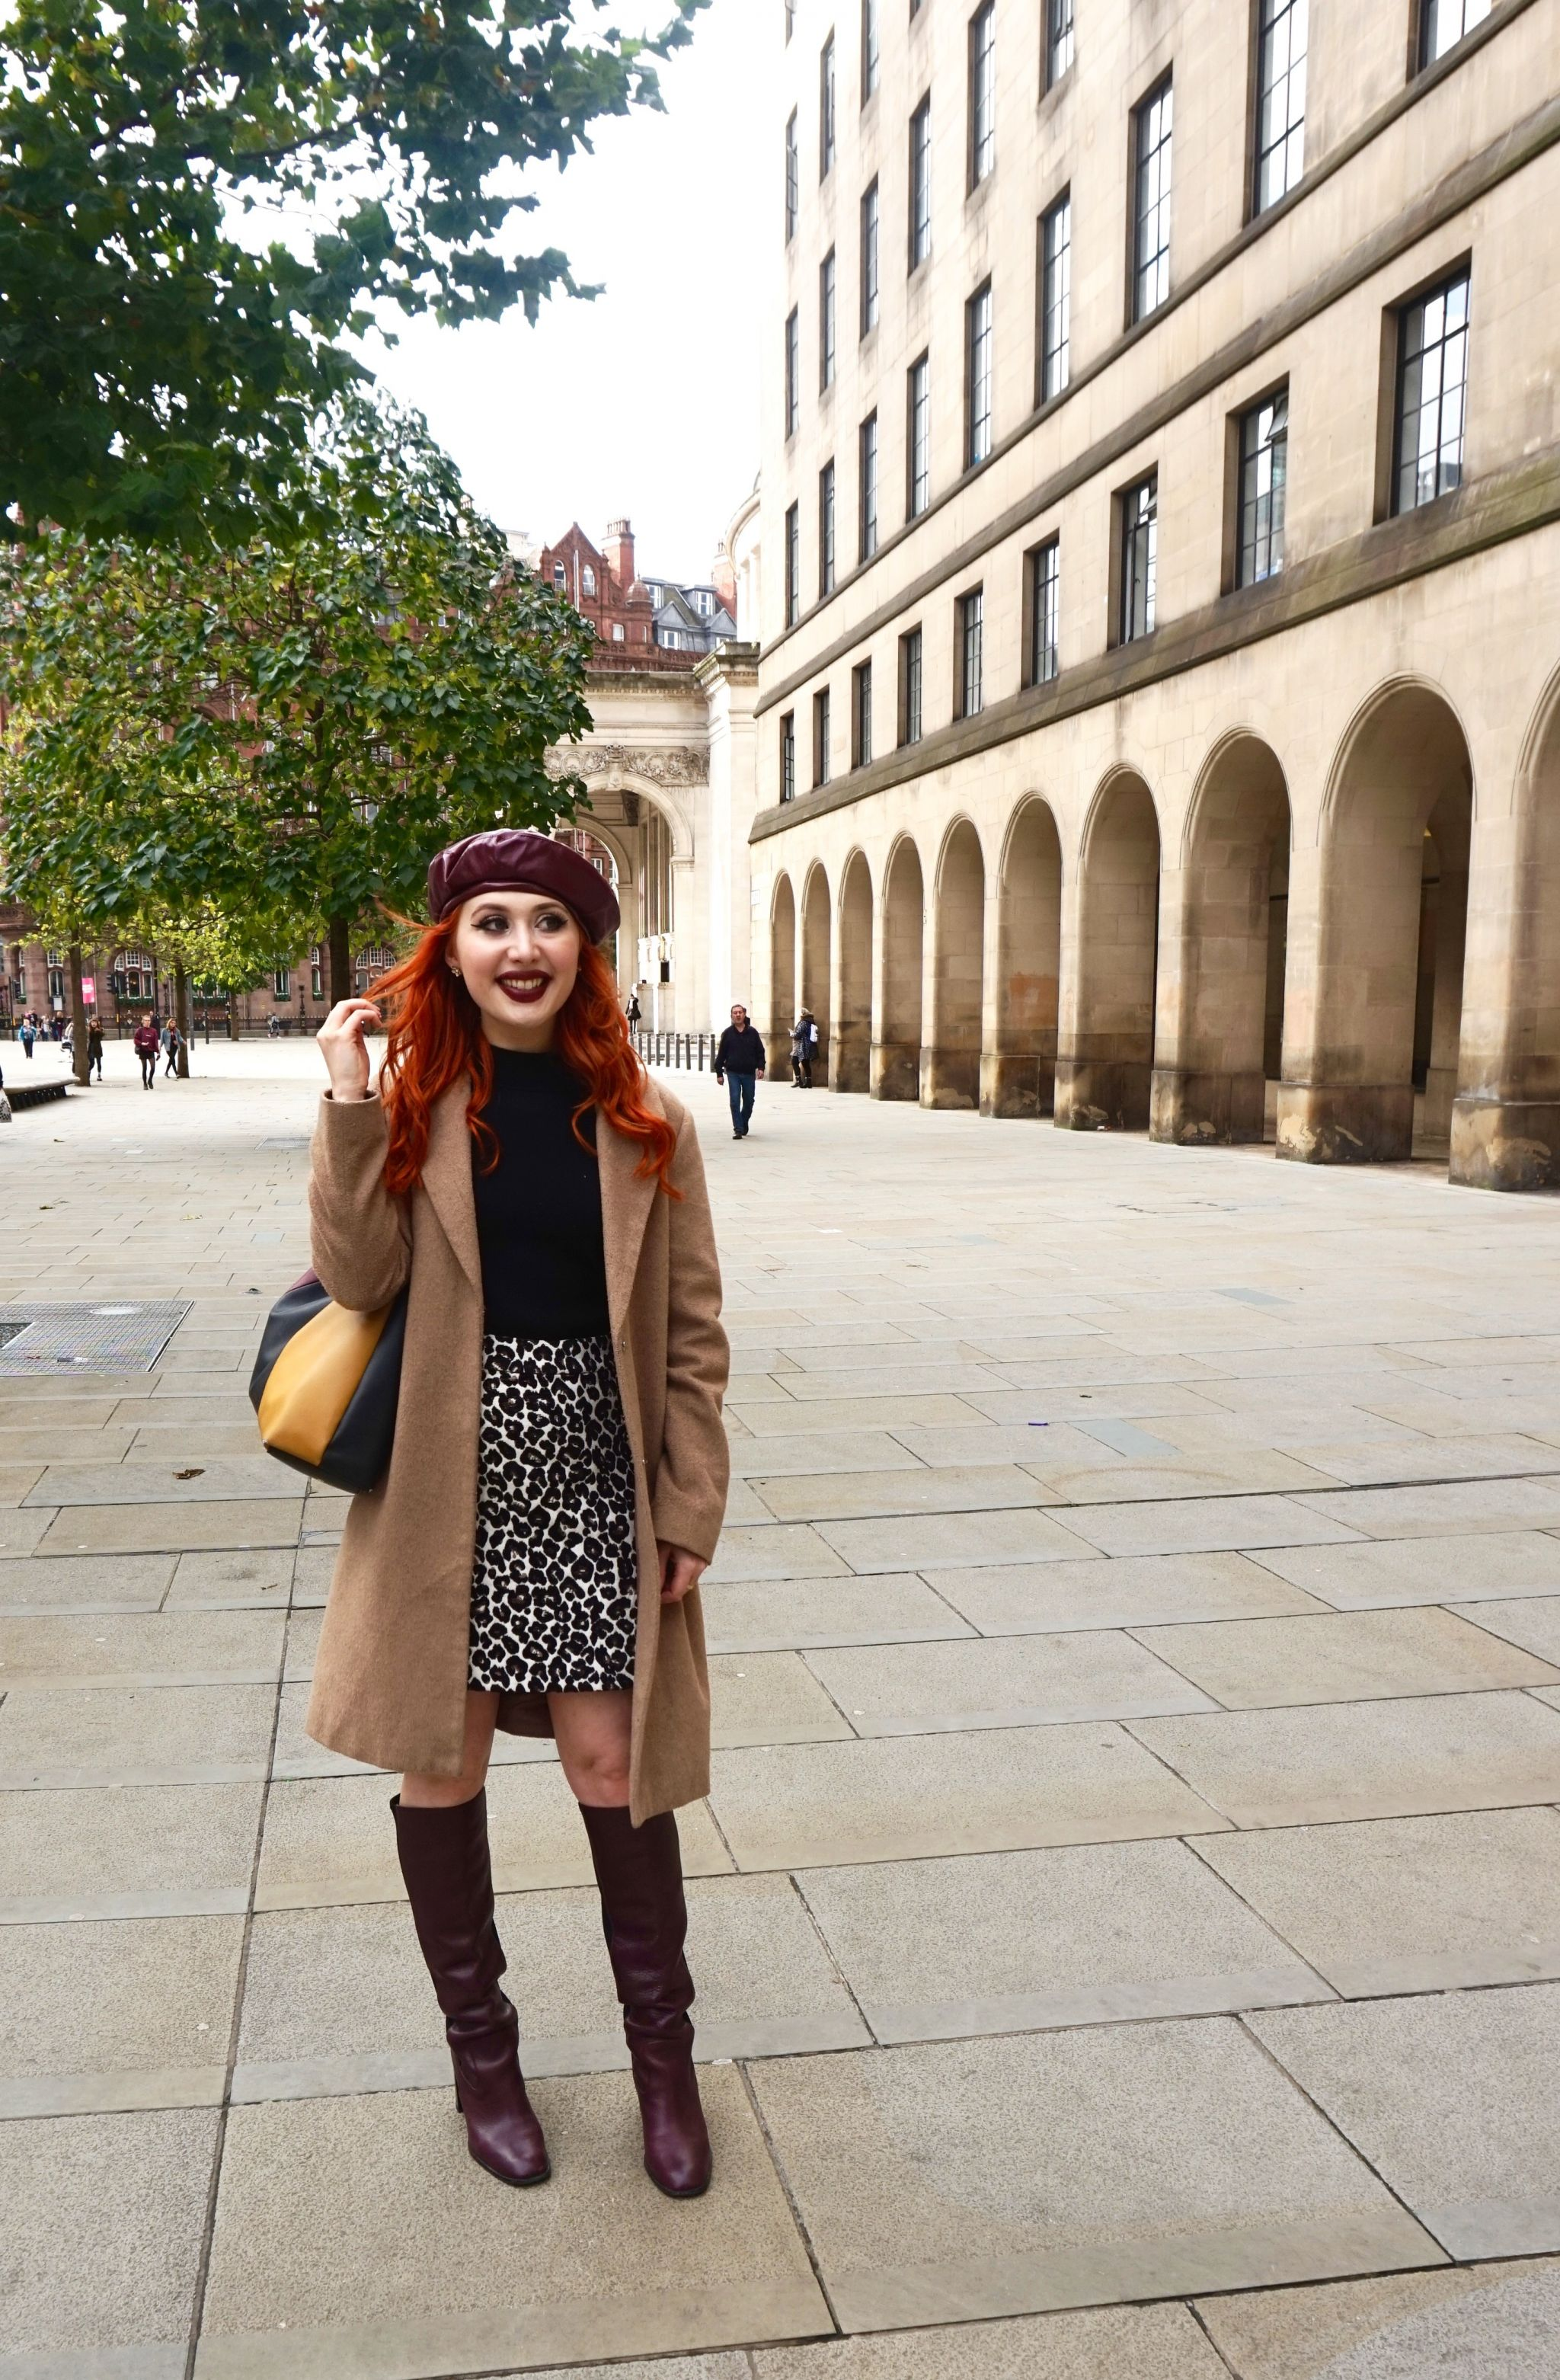 Blogger Twenty-Something City in St Peter's Square Manchester talking about street style Instagram photography